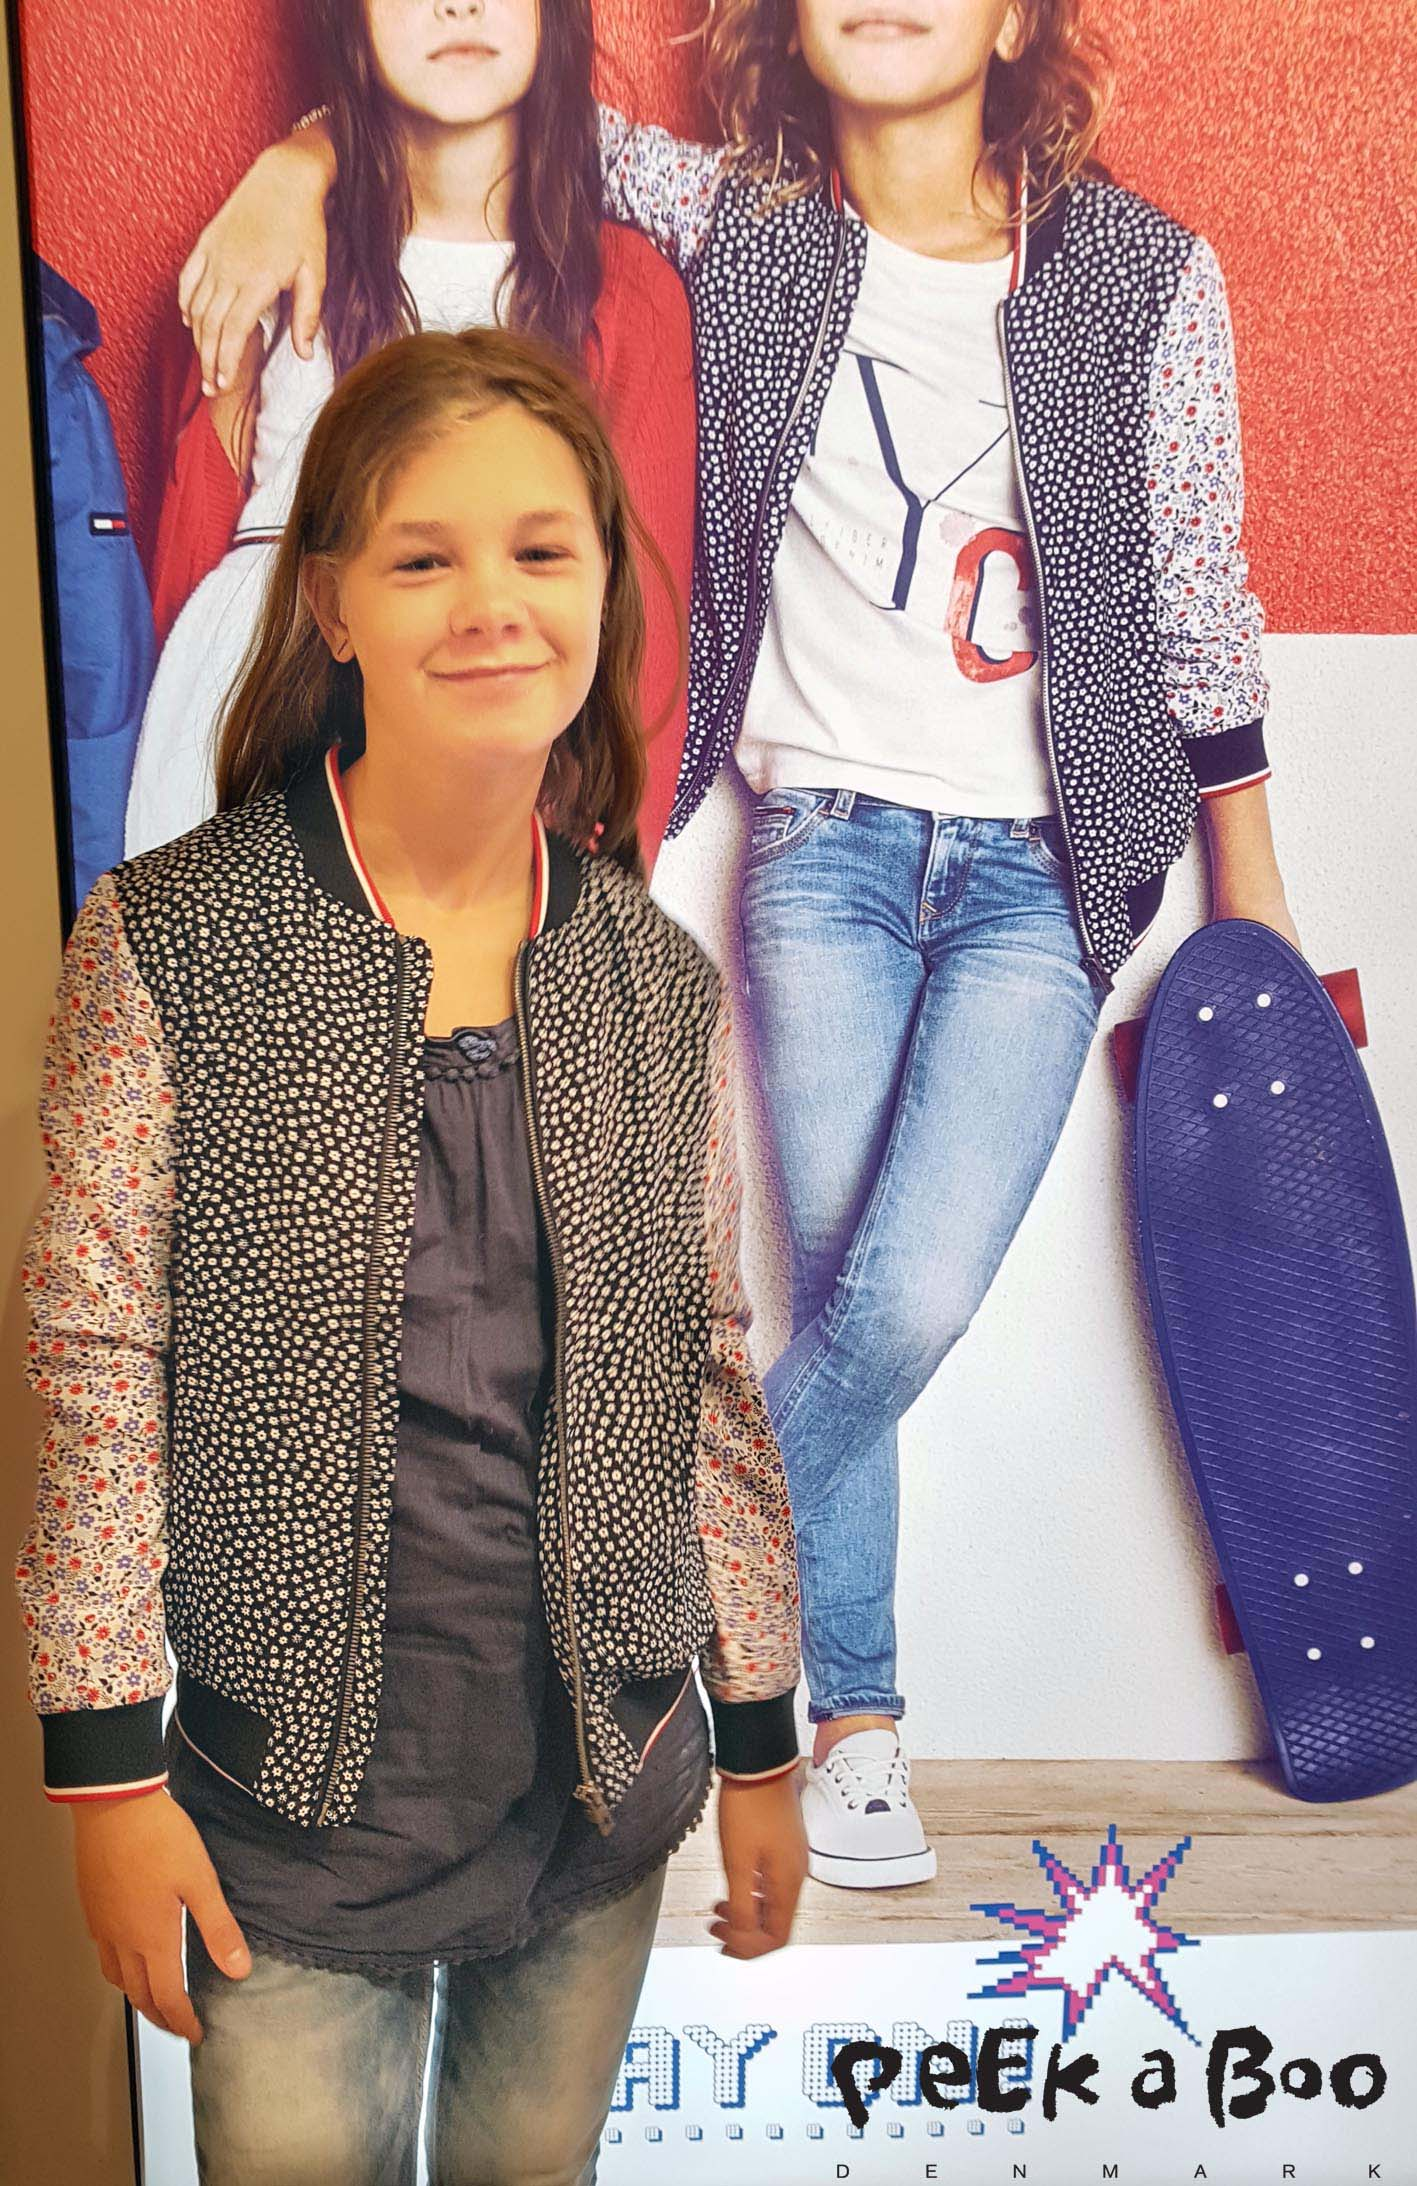 Tommy Hilfiger bomber jacket in a cute pattern mix. Get you in the perfect spring mood.